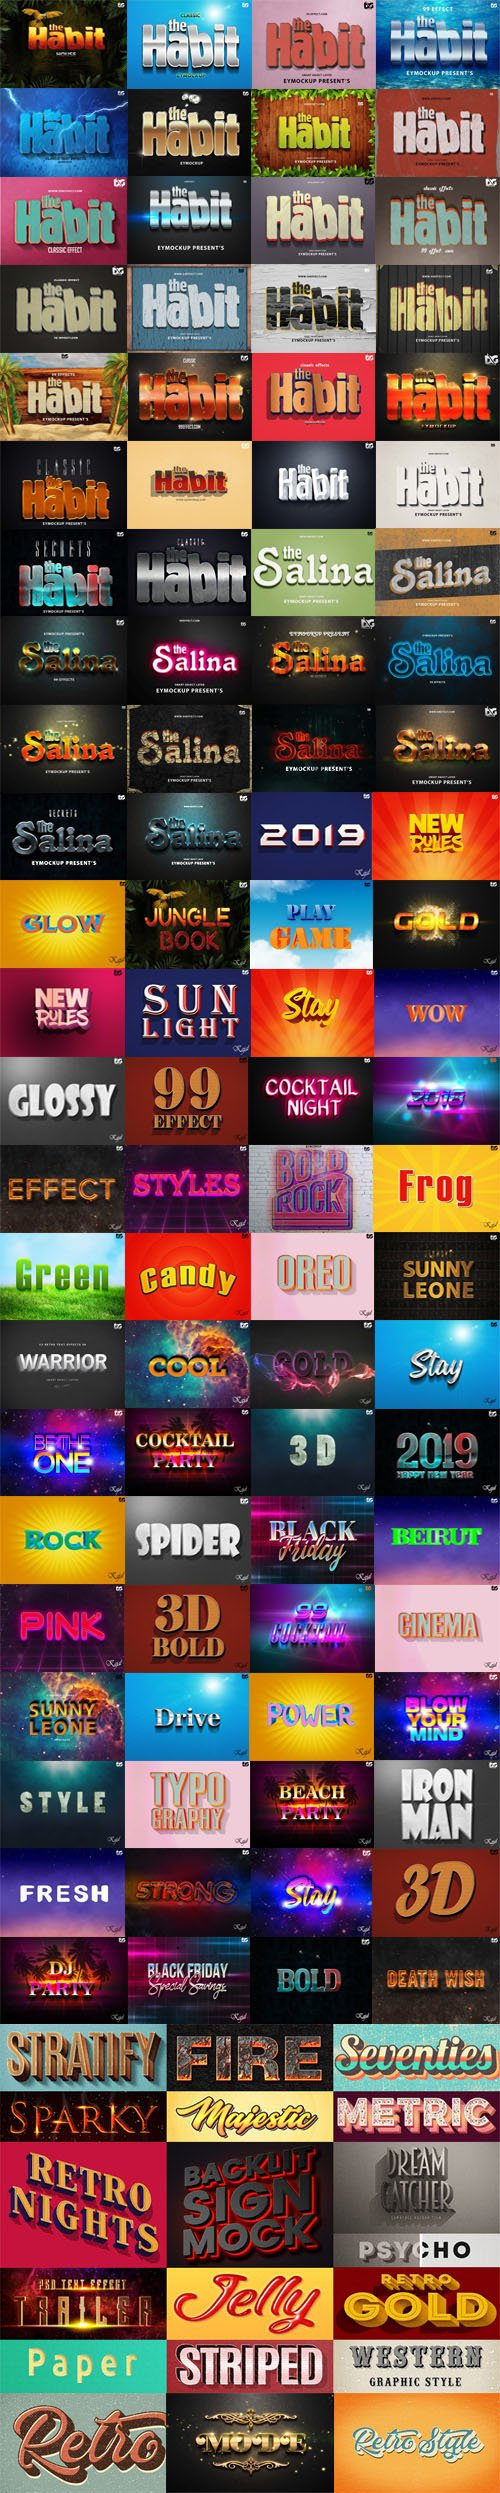 100+ Amazing 3D Photoshop Text Style Effects 2018